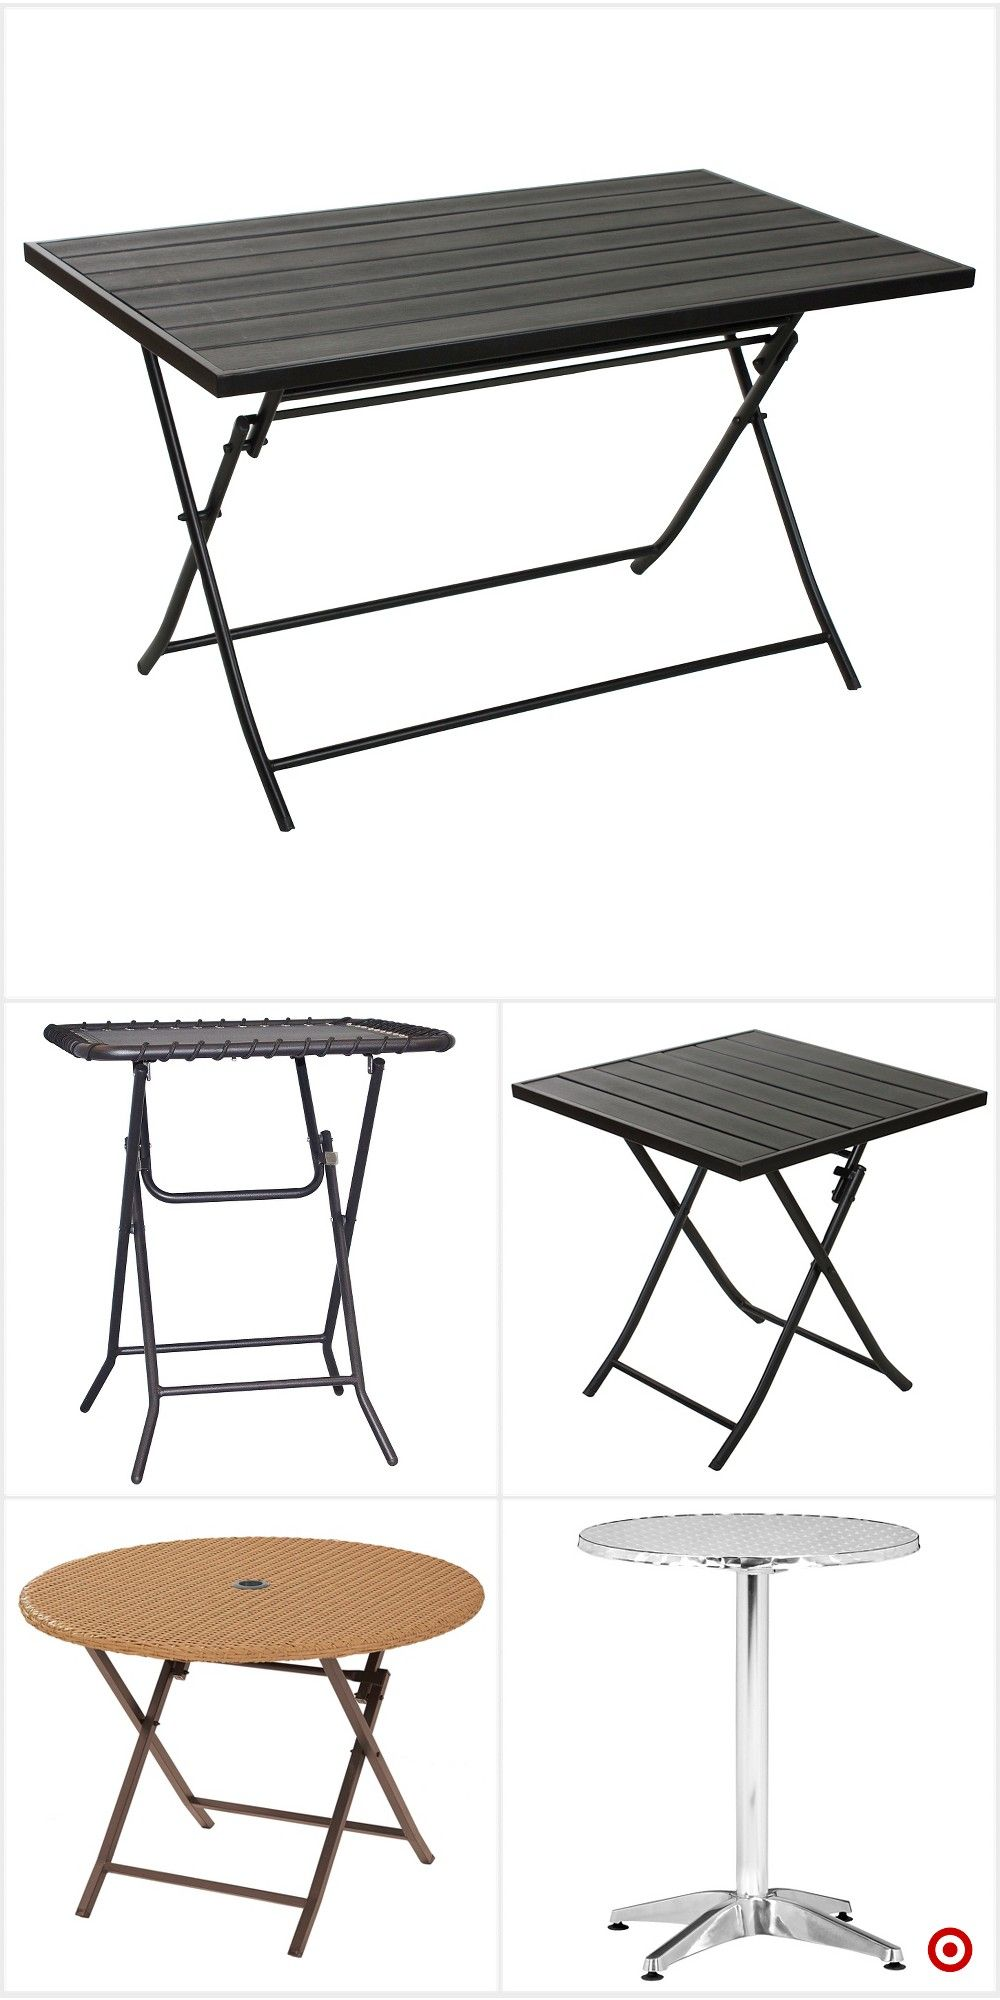 Shop Target For Patio Folding Table You Will Love At Great Low